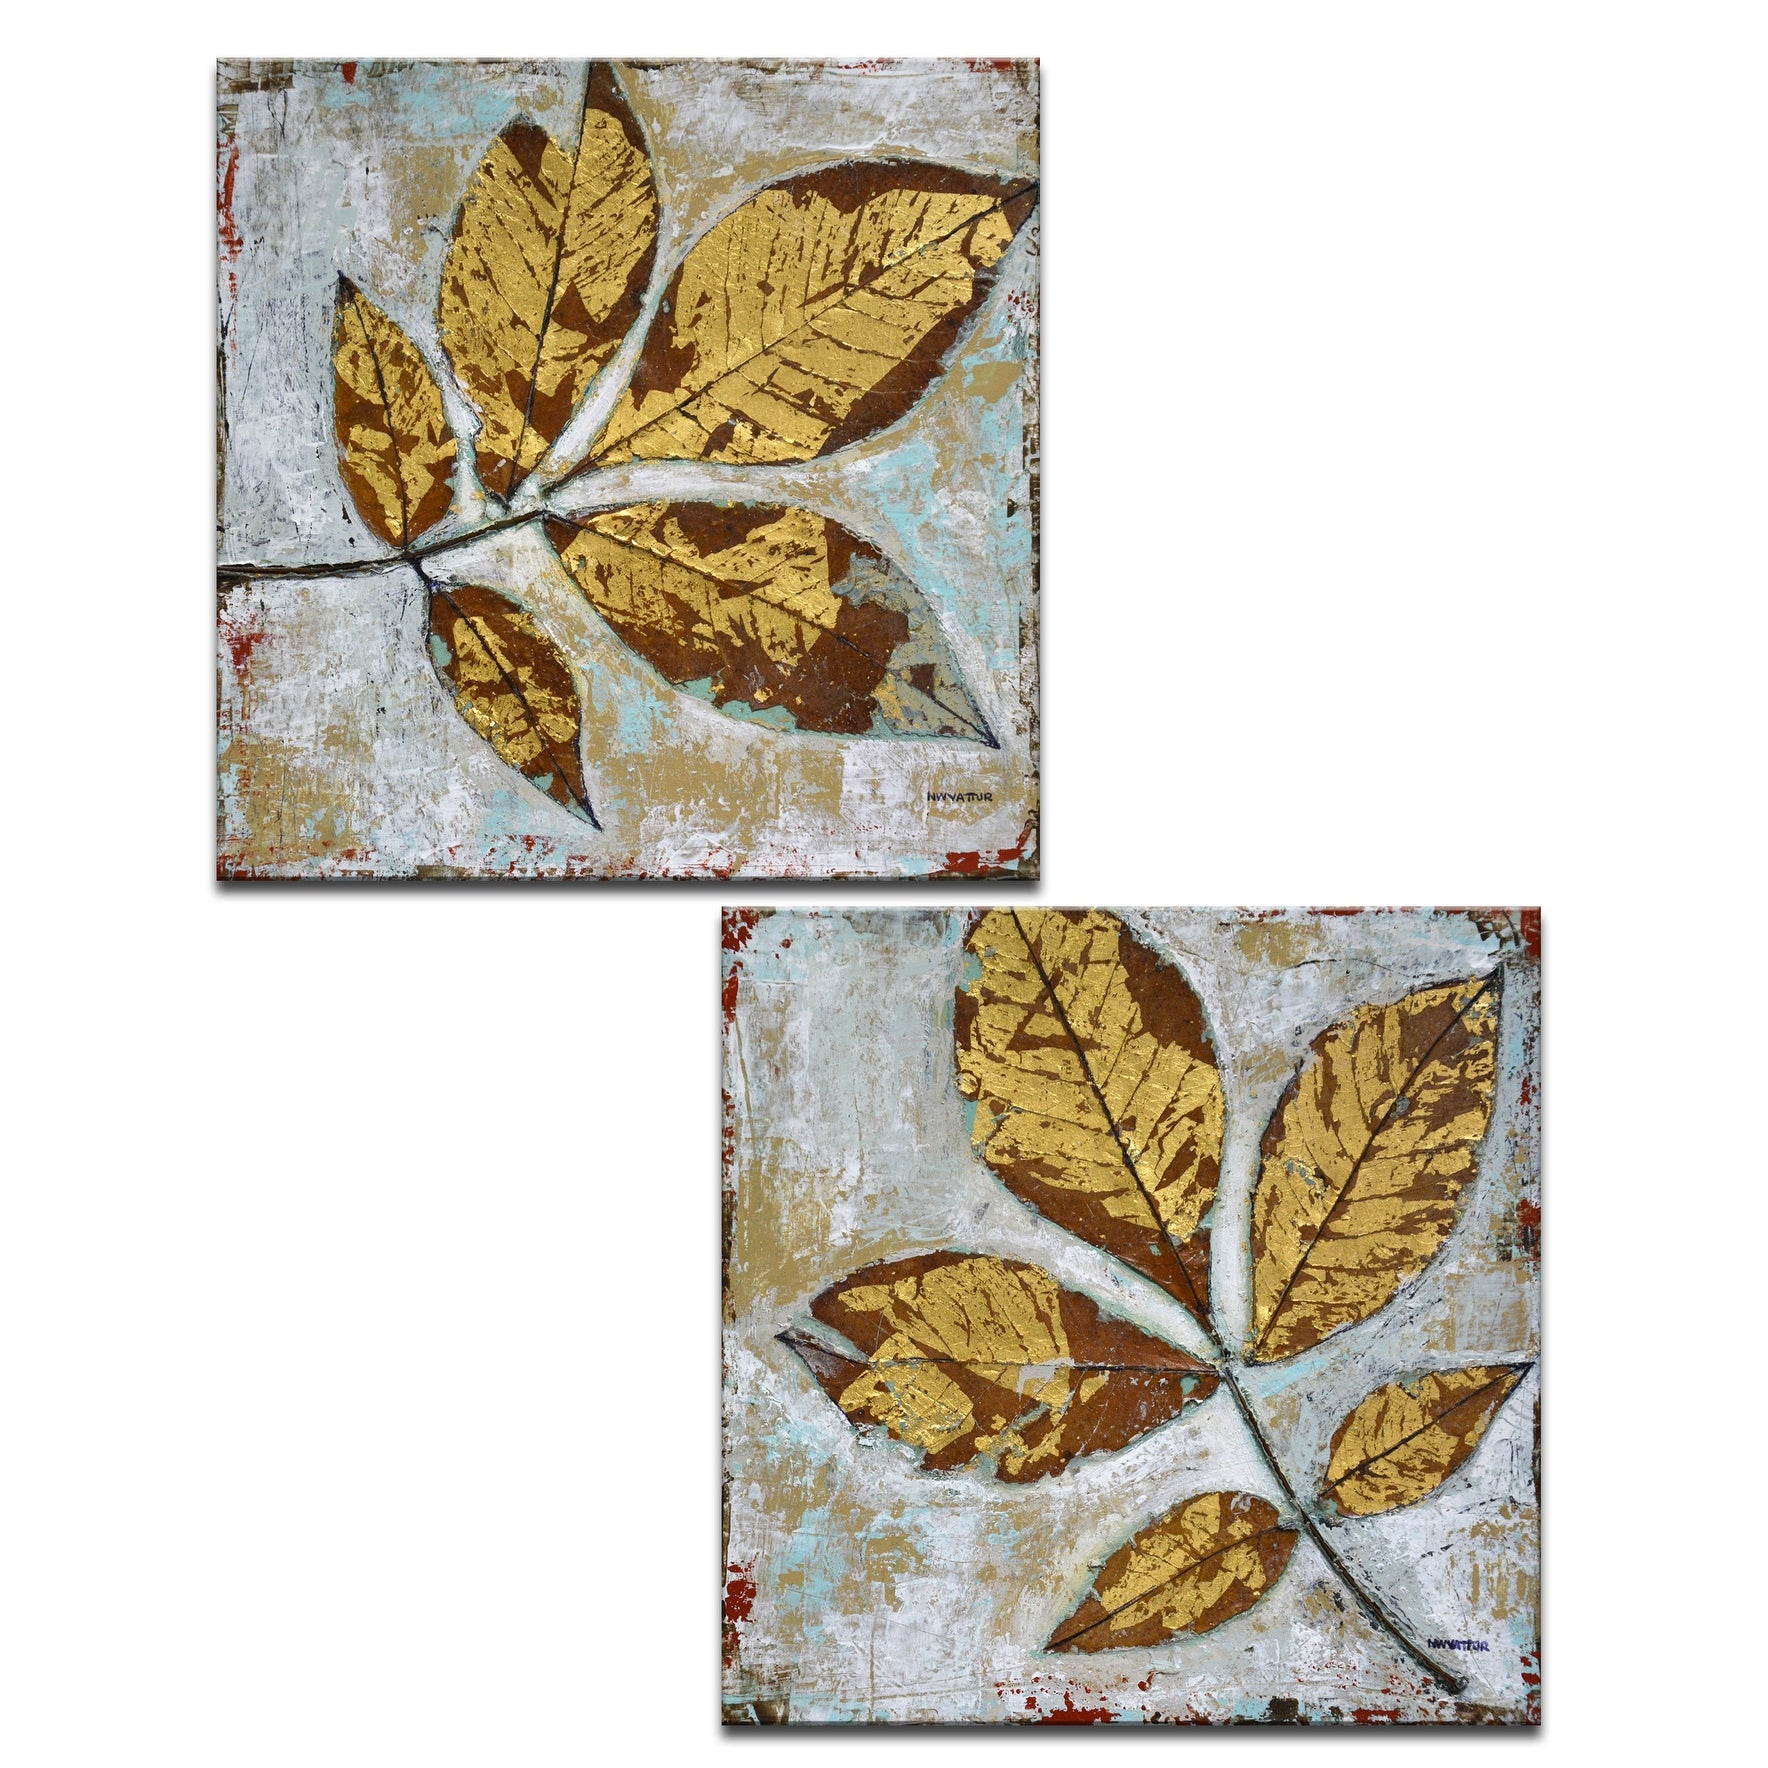 Gilded Autumn Leaves 2 Pc Wrapped Canvas Wall Art Set By Norman Wyatt Jr On Sale Overstock 13254081